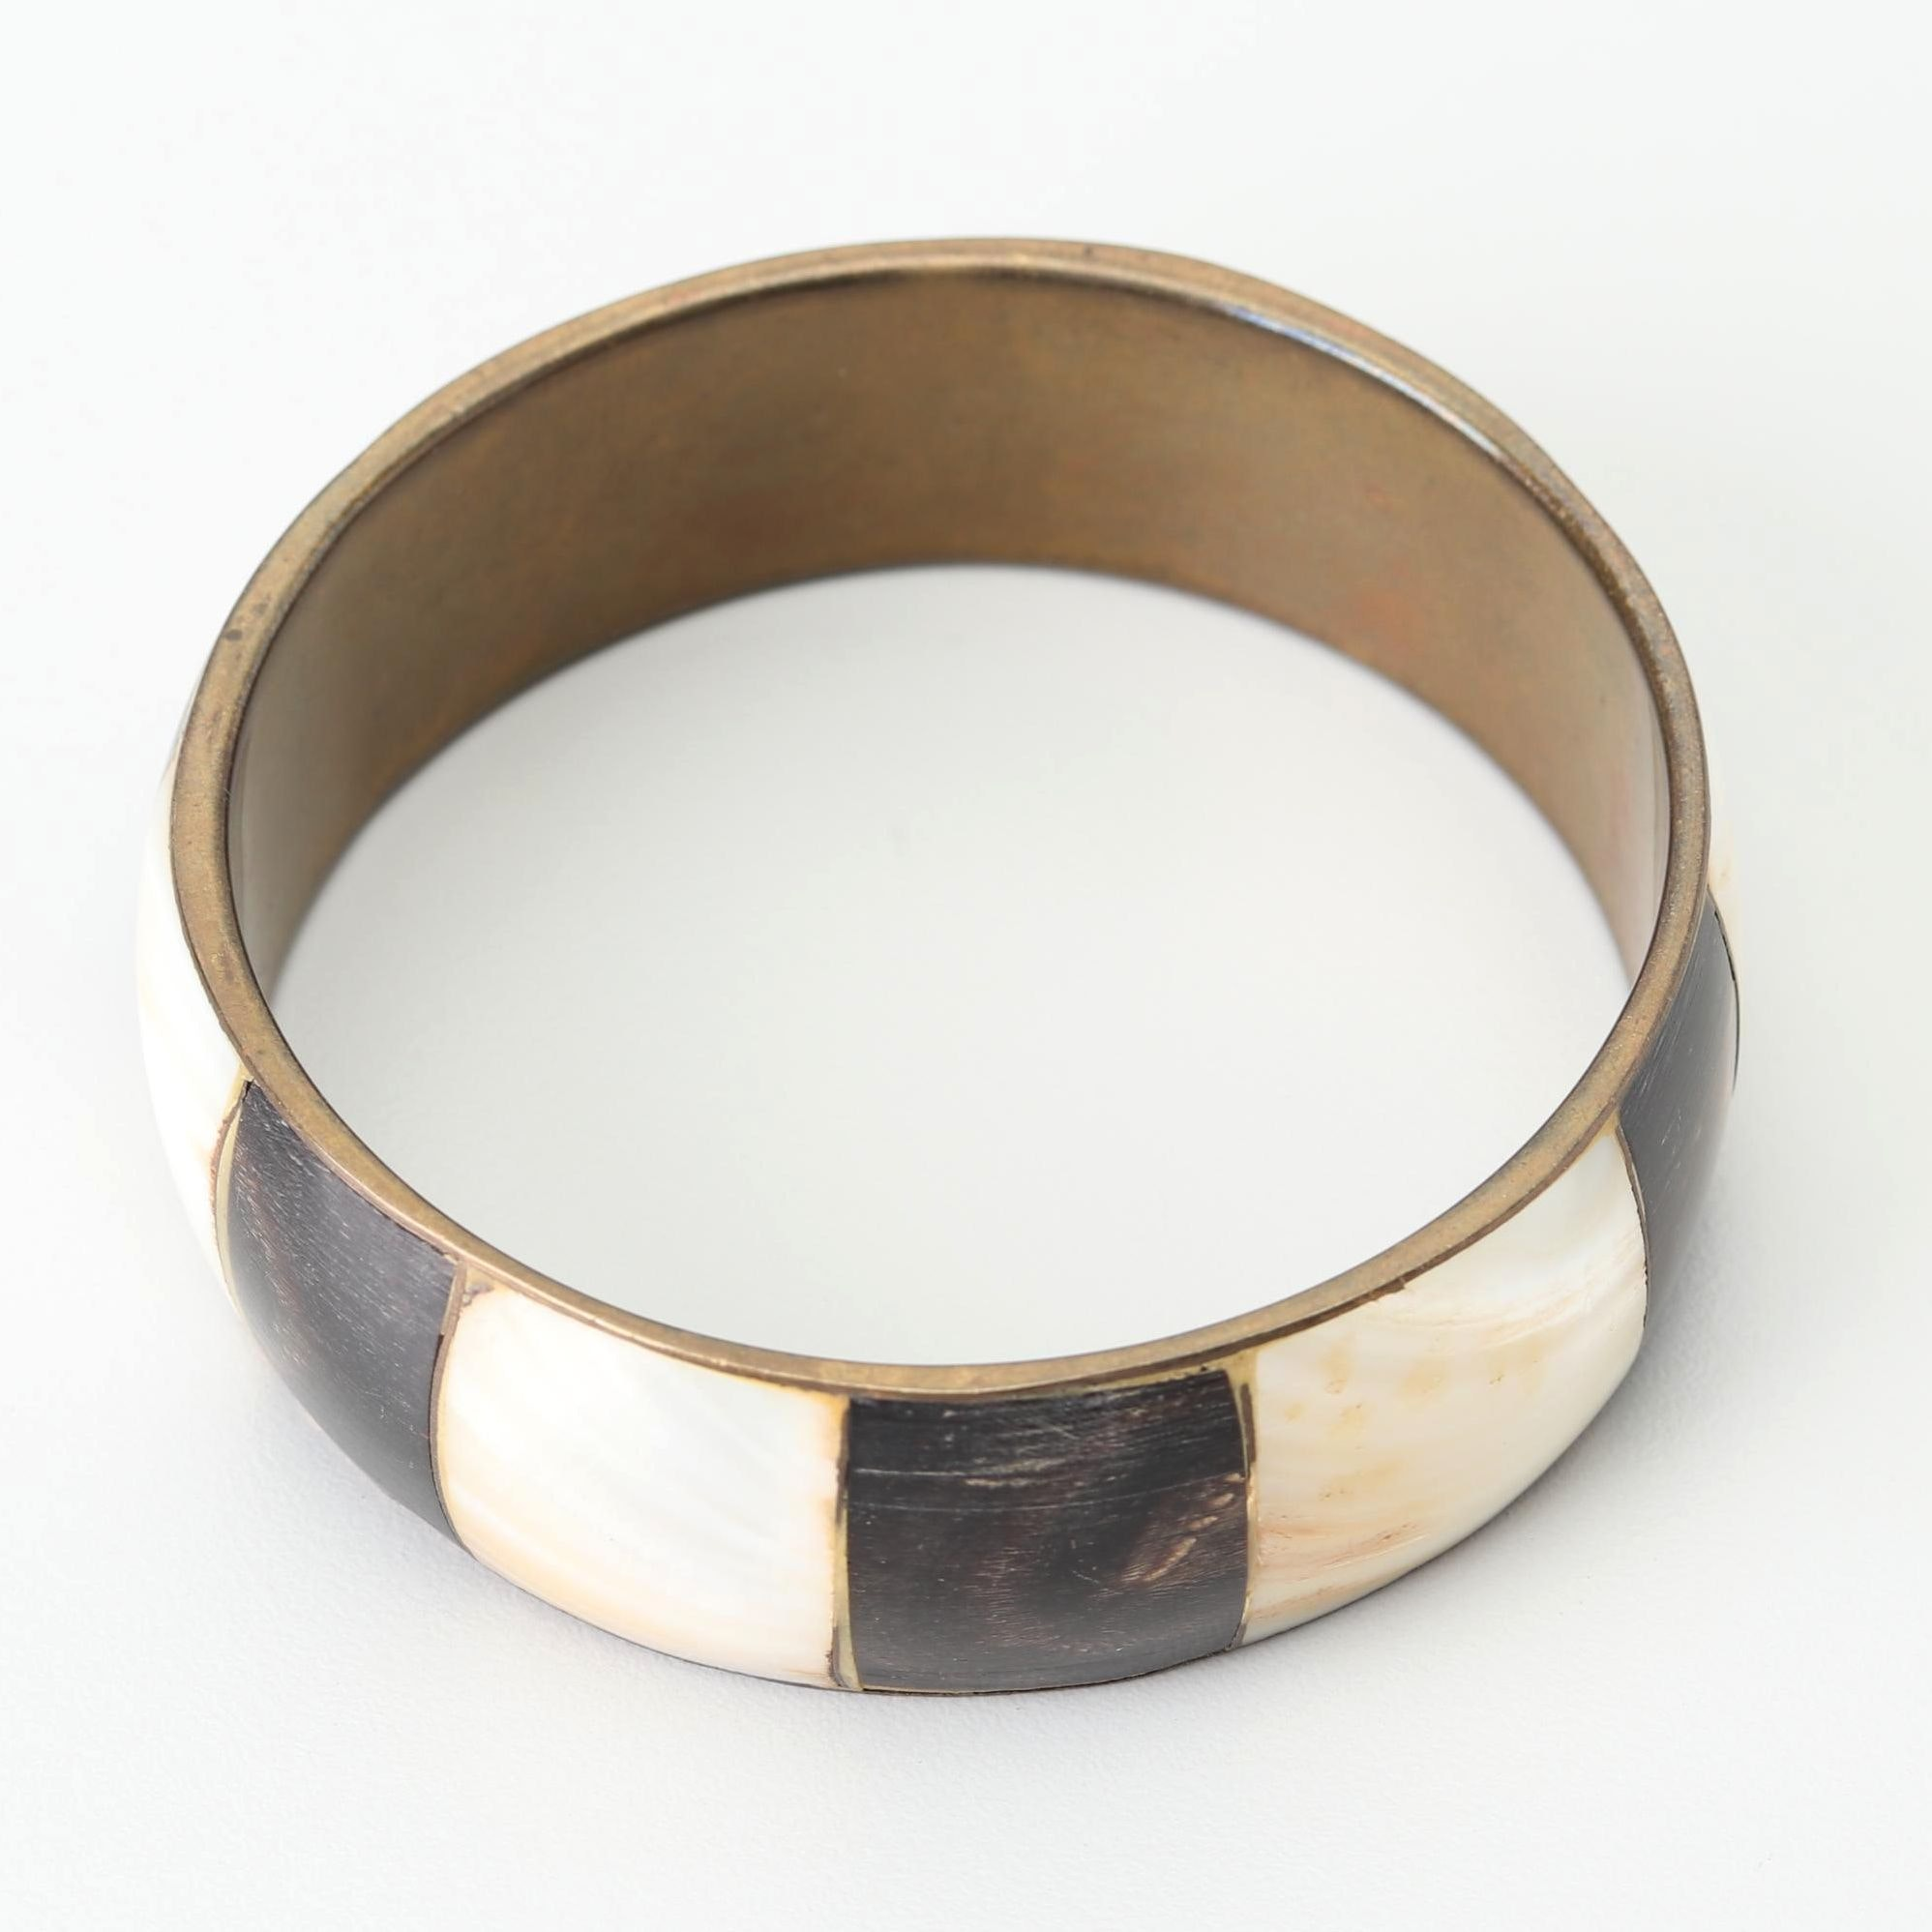 Brass Mother of Pearl and Black Wood Cuff Bracelet